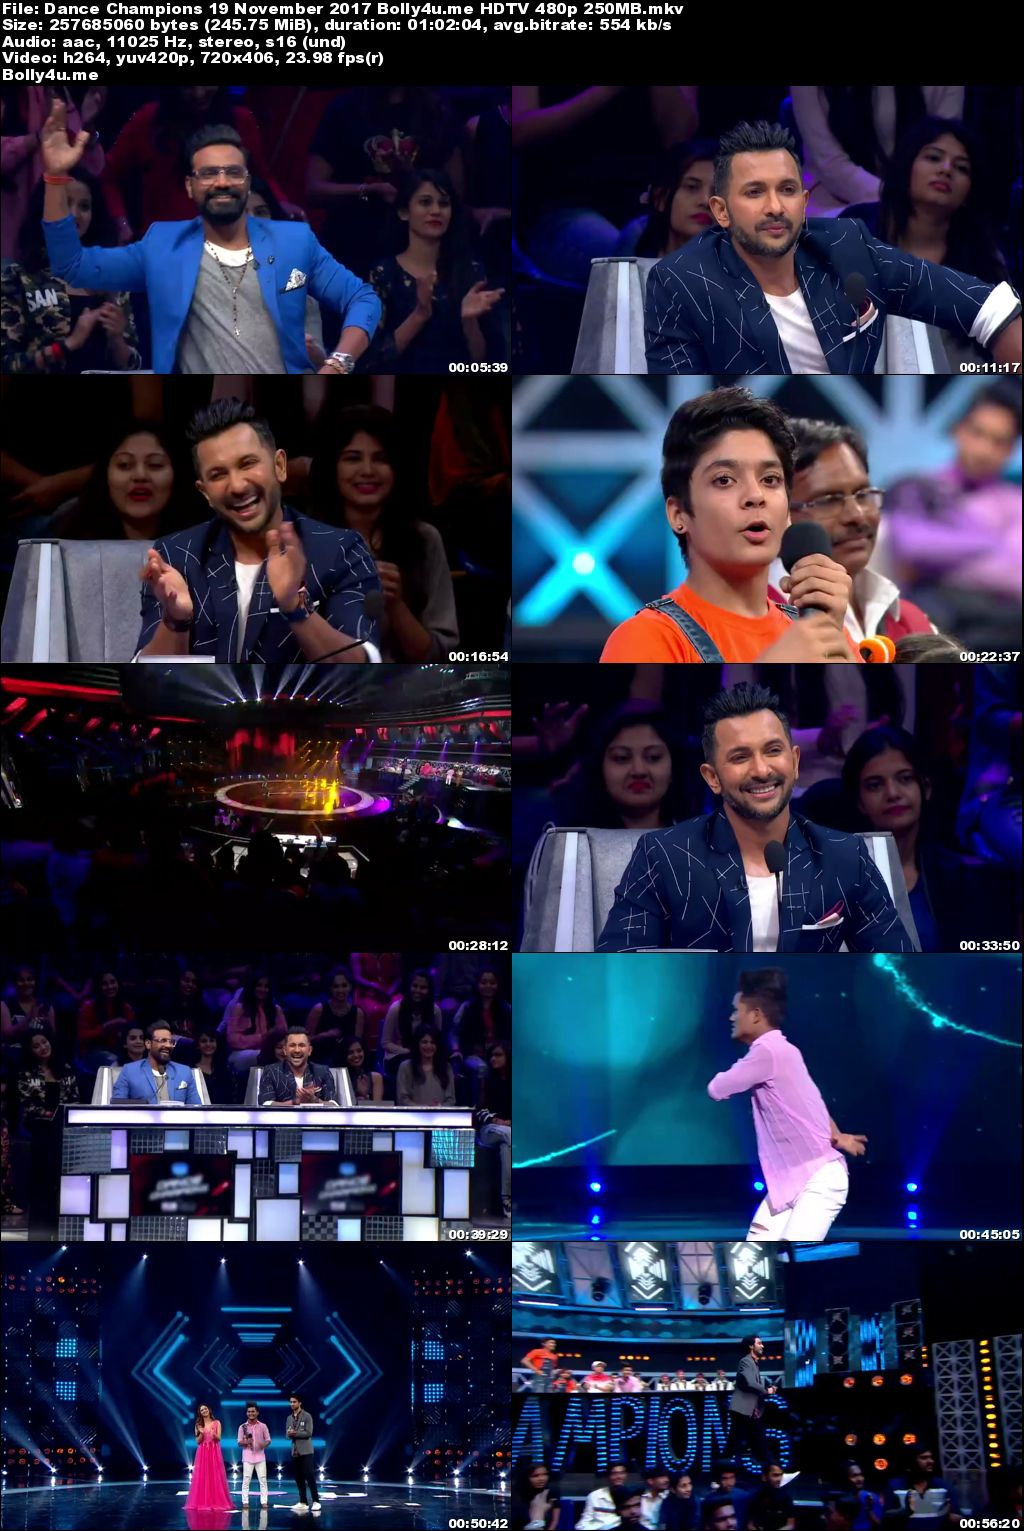 Dance Champions HDTV 480p 250MB 19 November 2017 Download